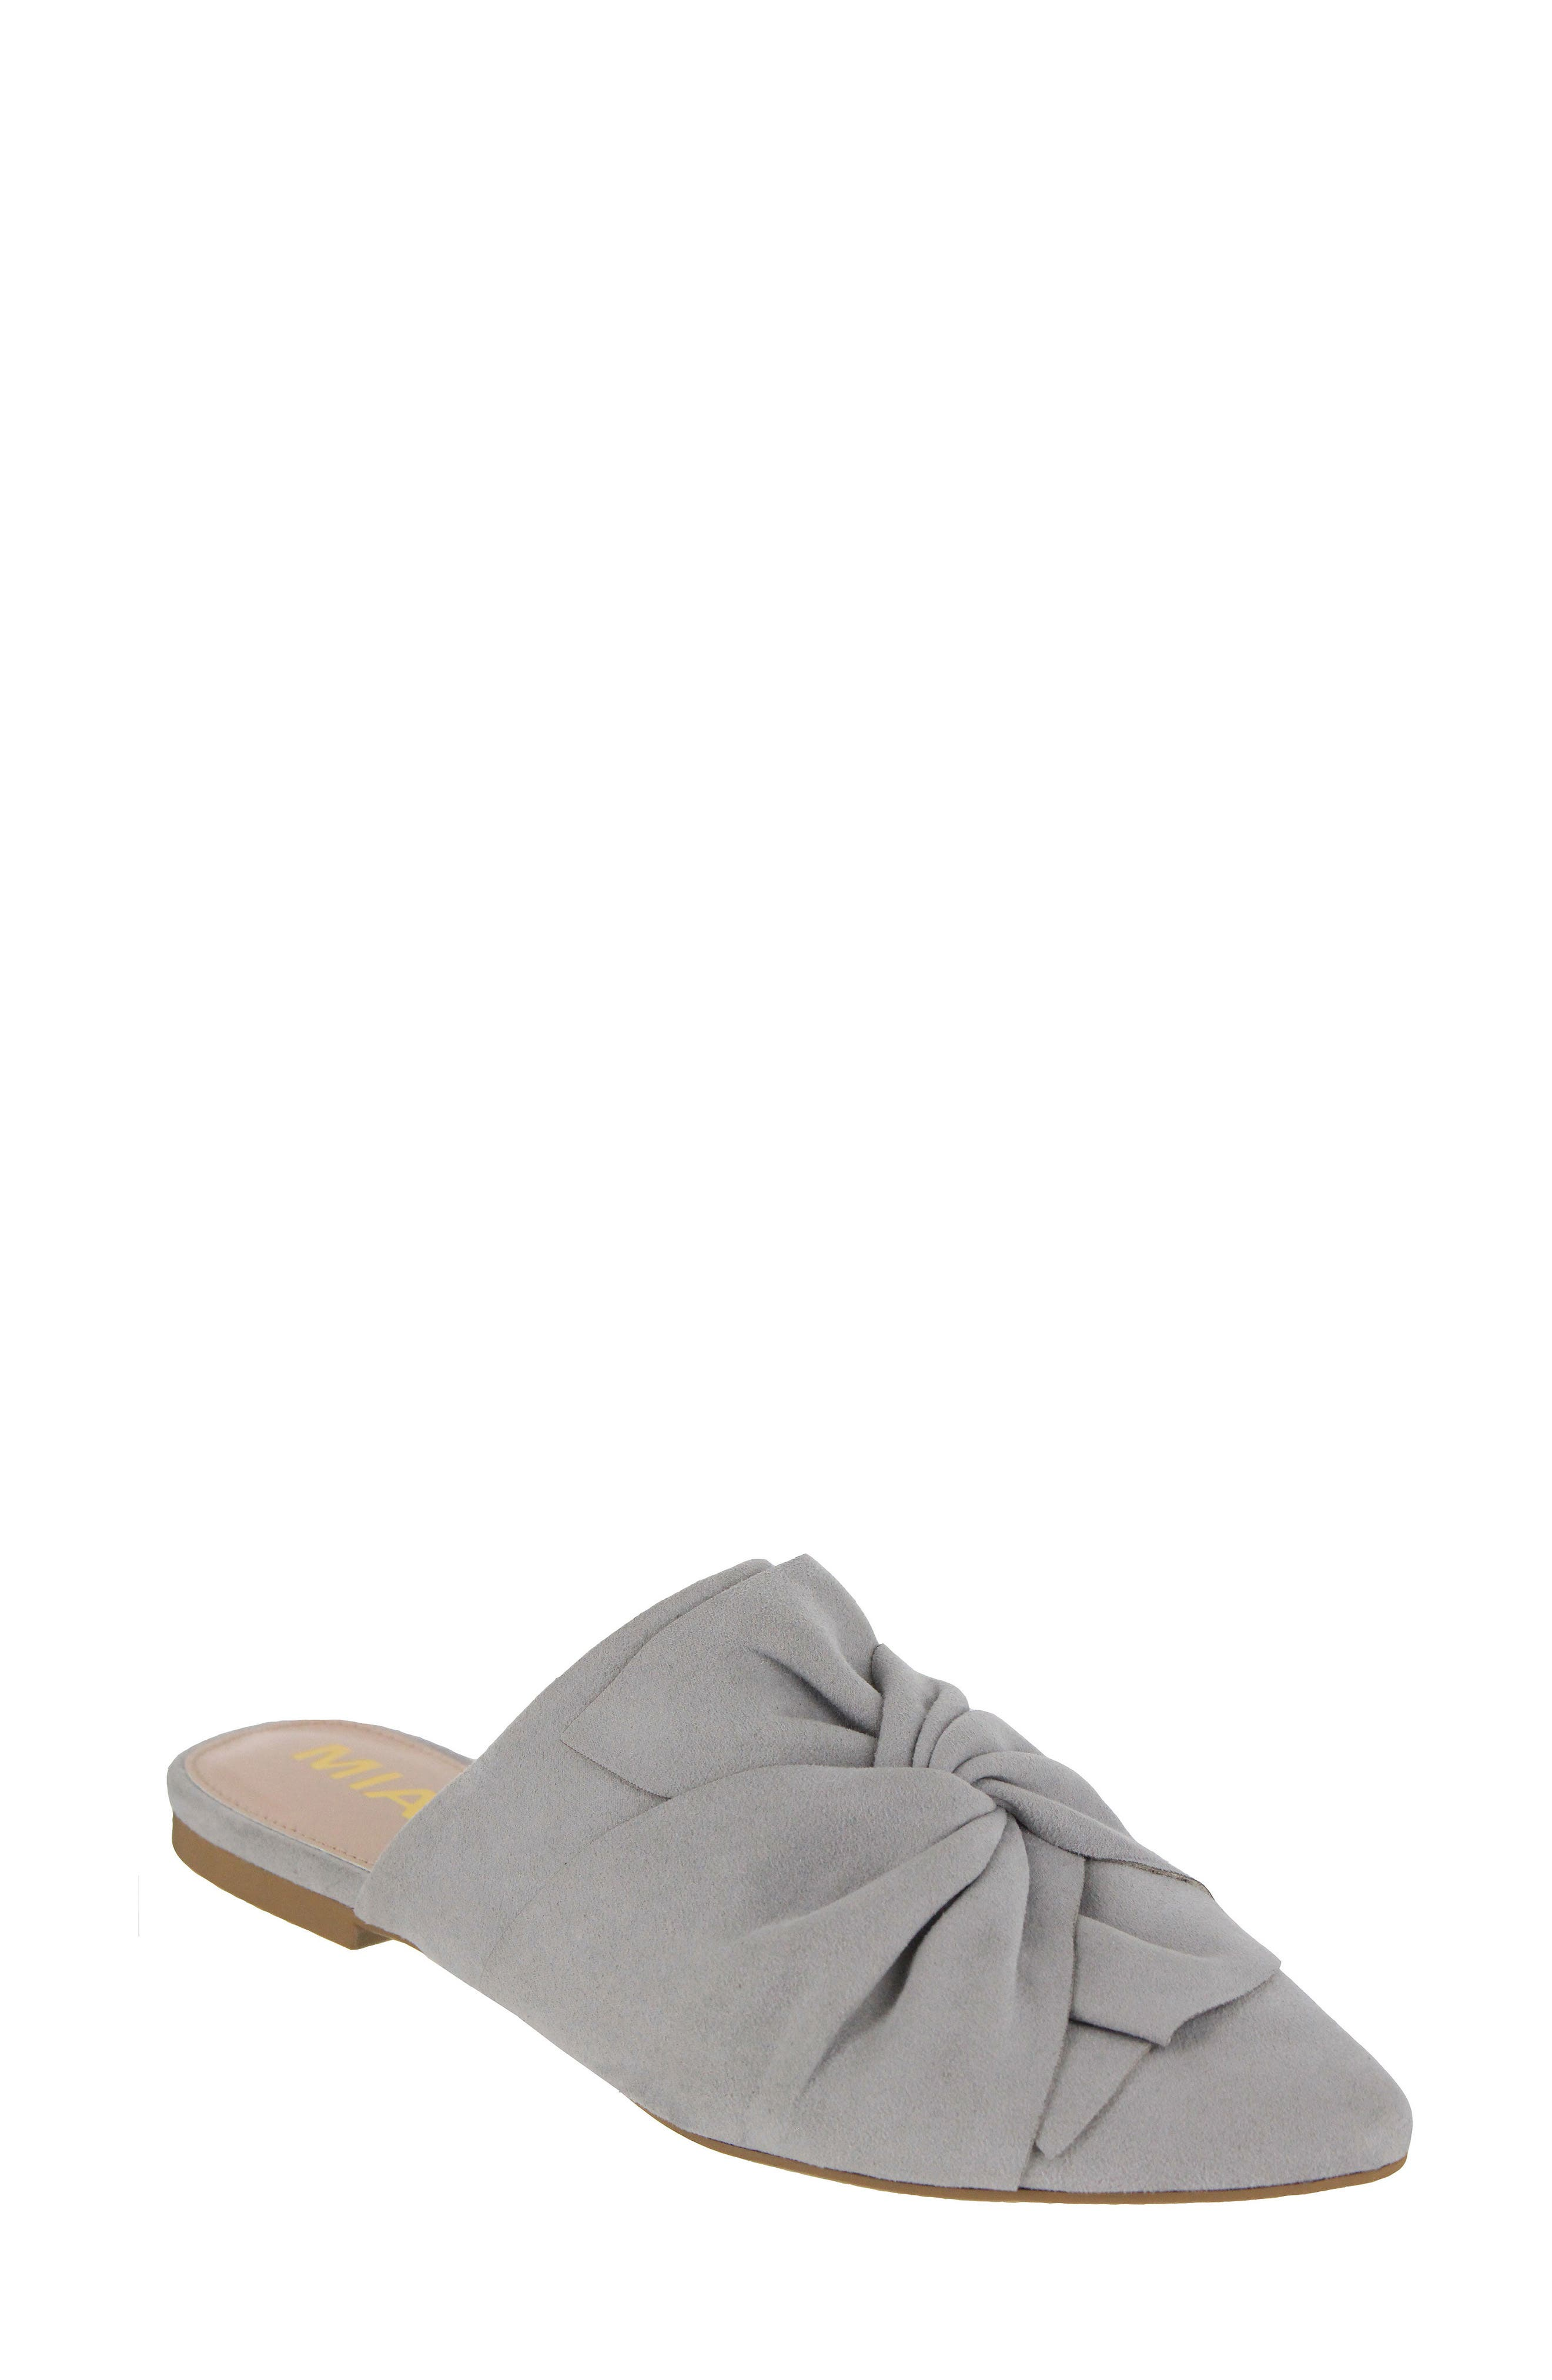 Cabaret Knotted Mule,                             Main thumbnail 1, color,                             Steel Gray Suede